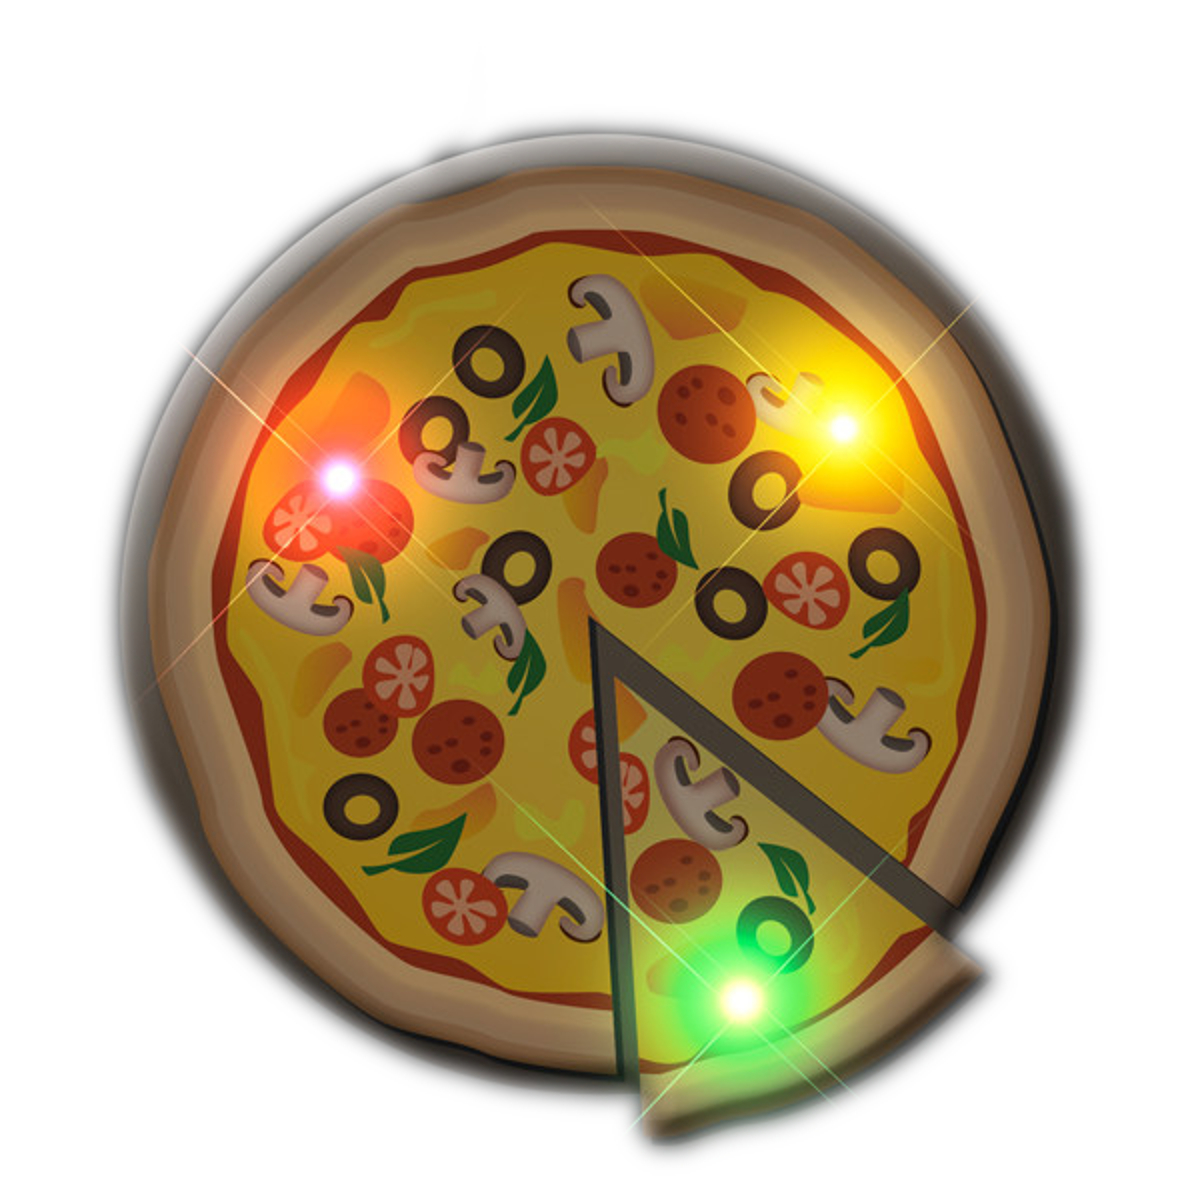 Pizza Flashing Body Light Lapel Pin Party Favors All Body Lights and Blinkees